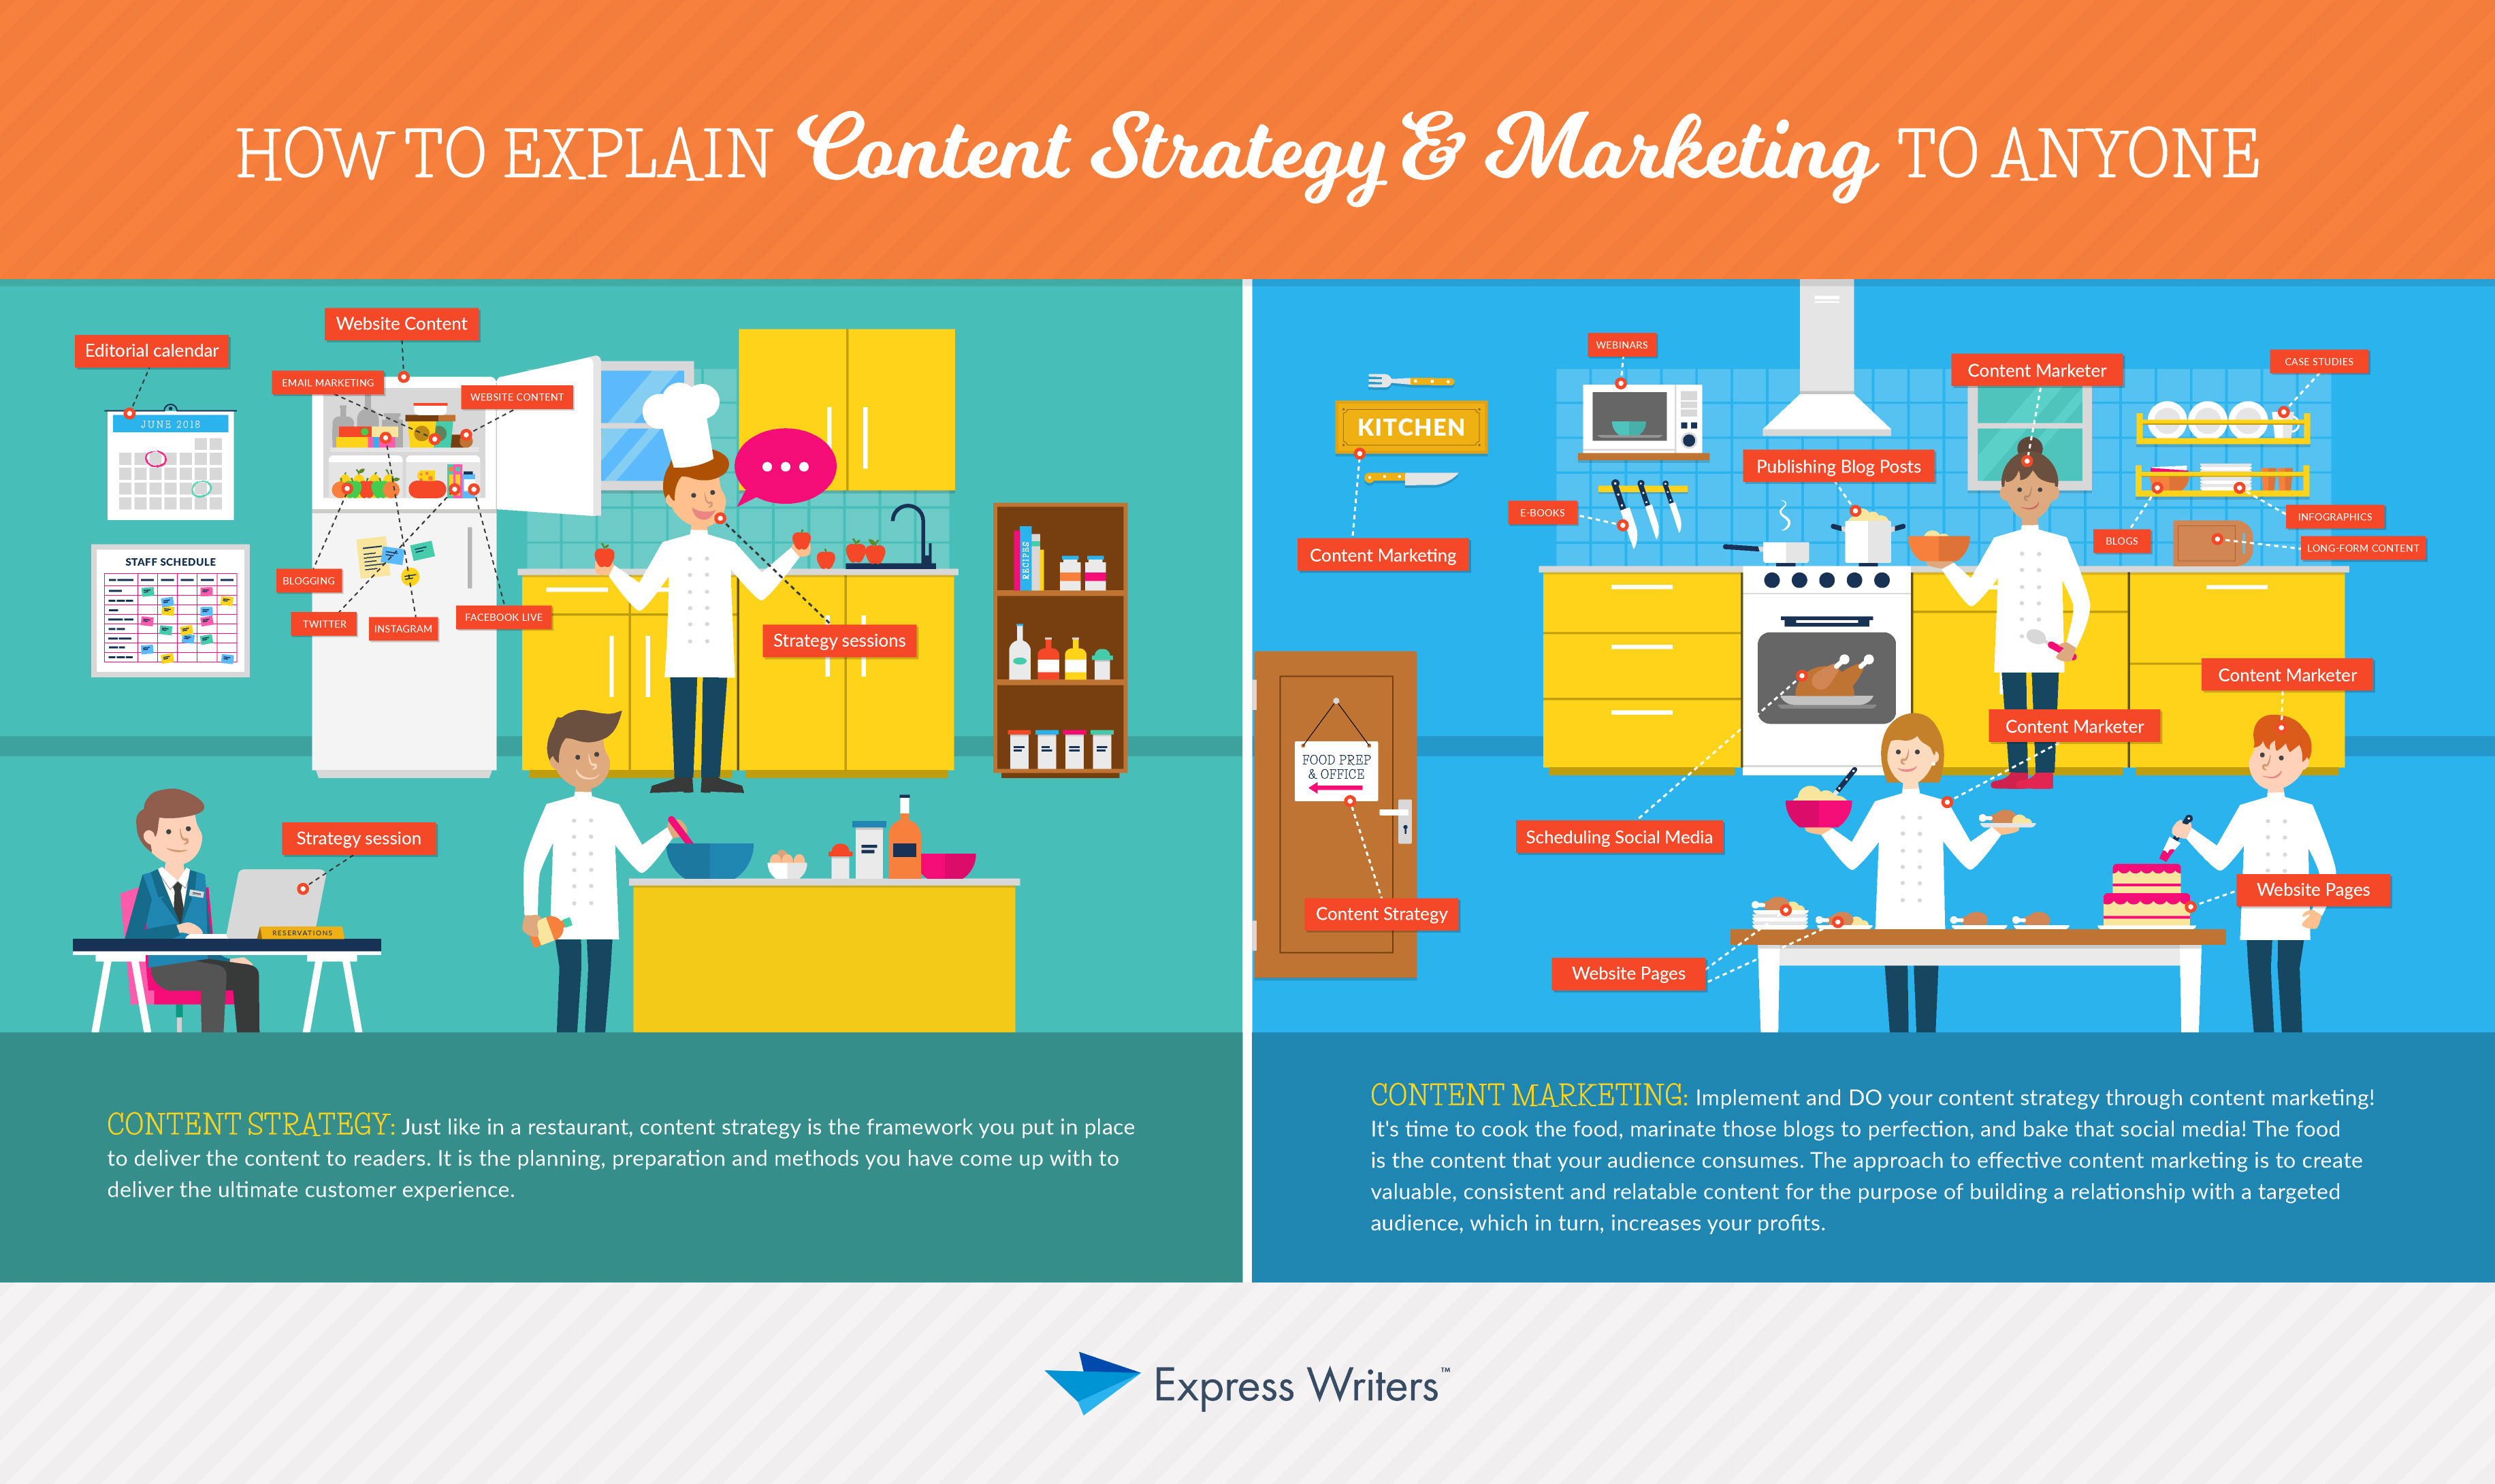 how to explain content strategy and content marketing